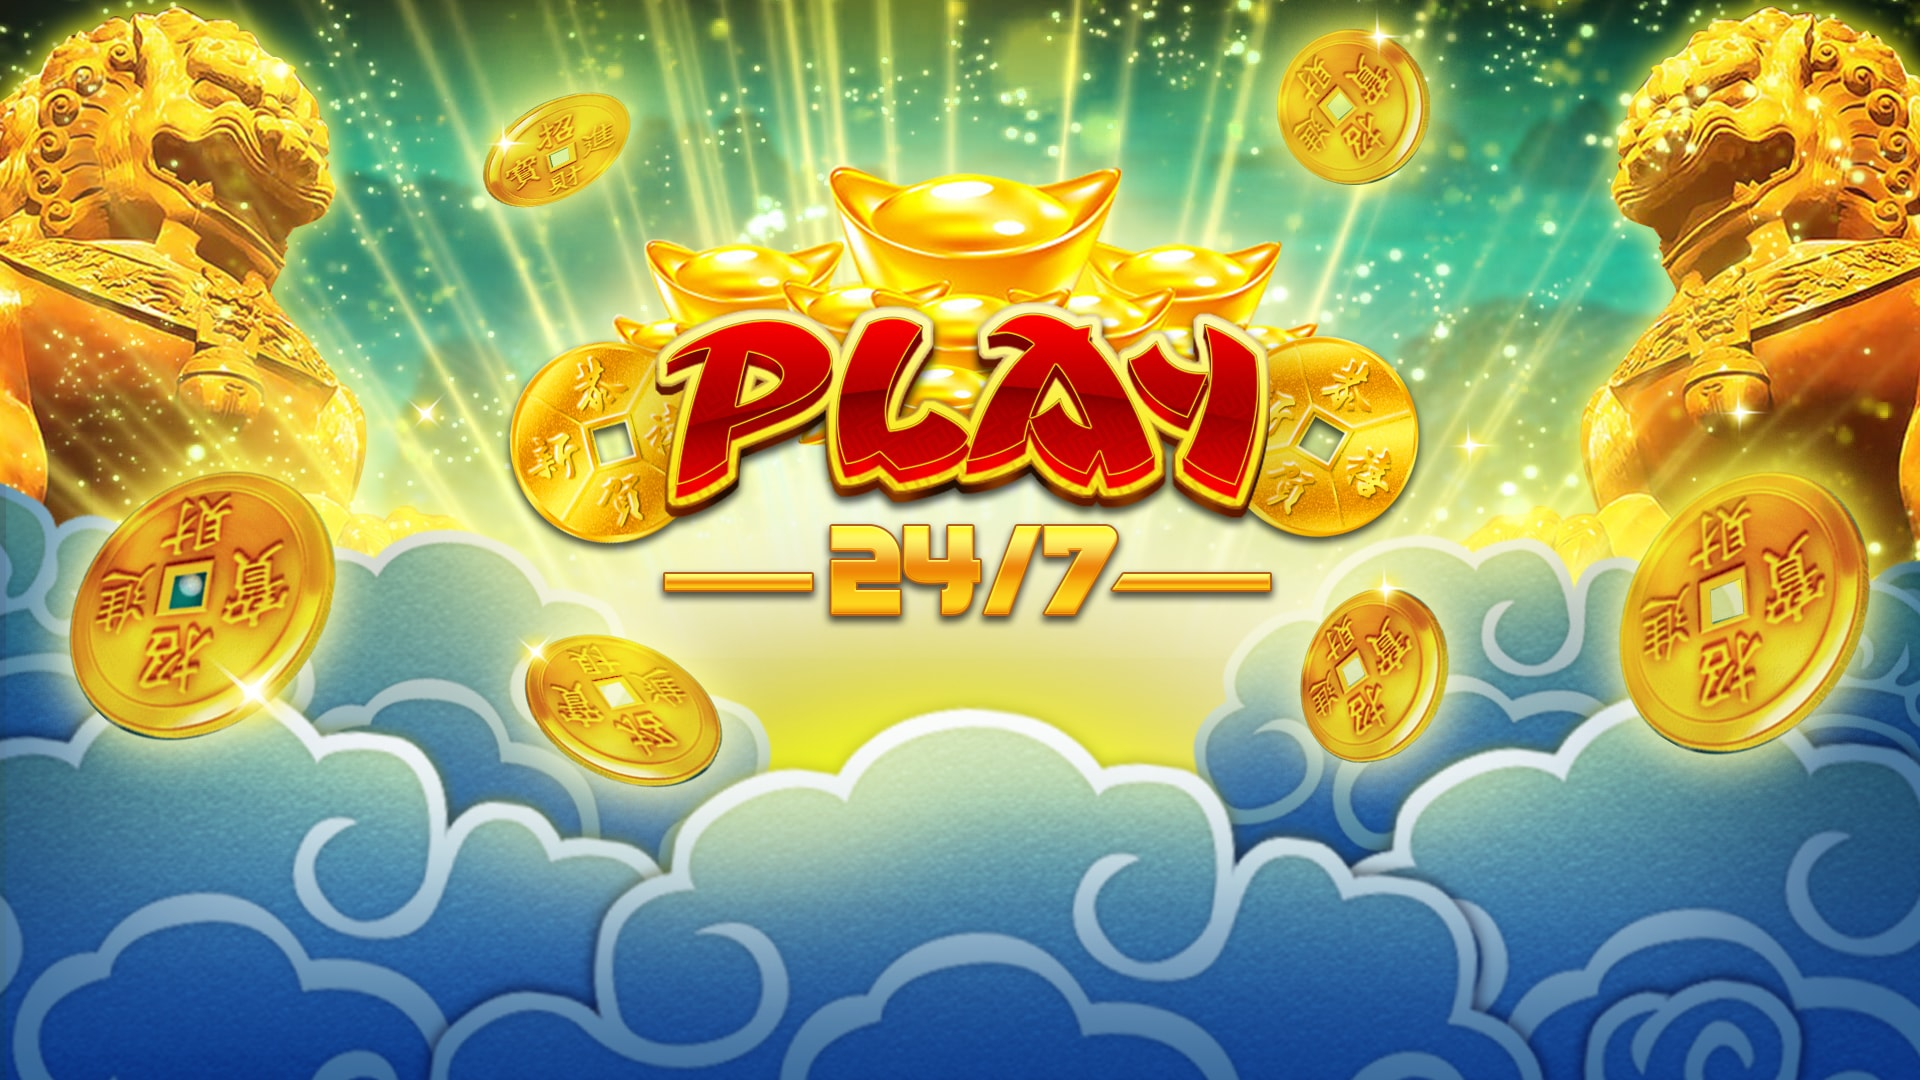 free online slot games - Online Casino Fun and Fantastic for All Gambling Players